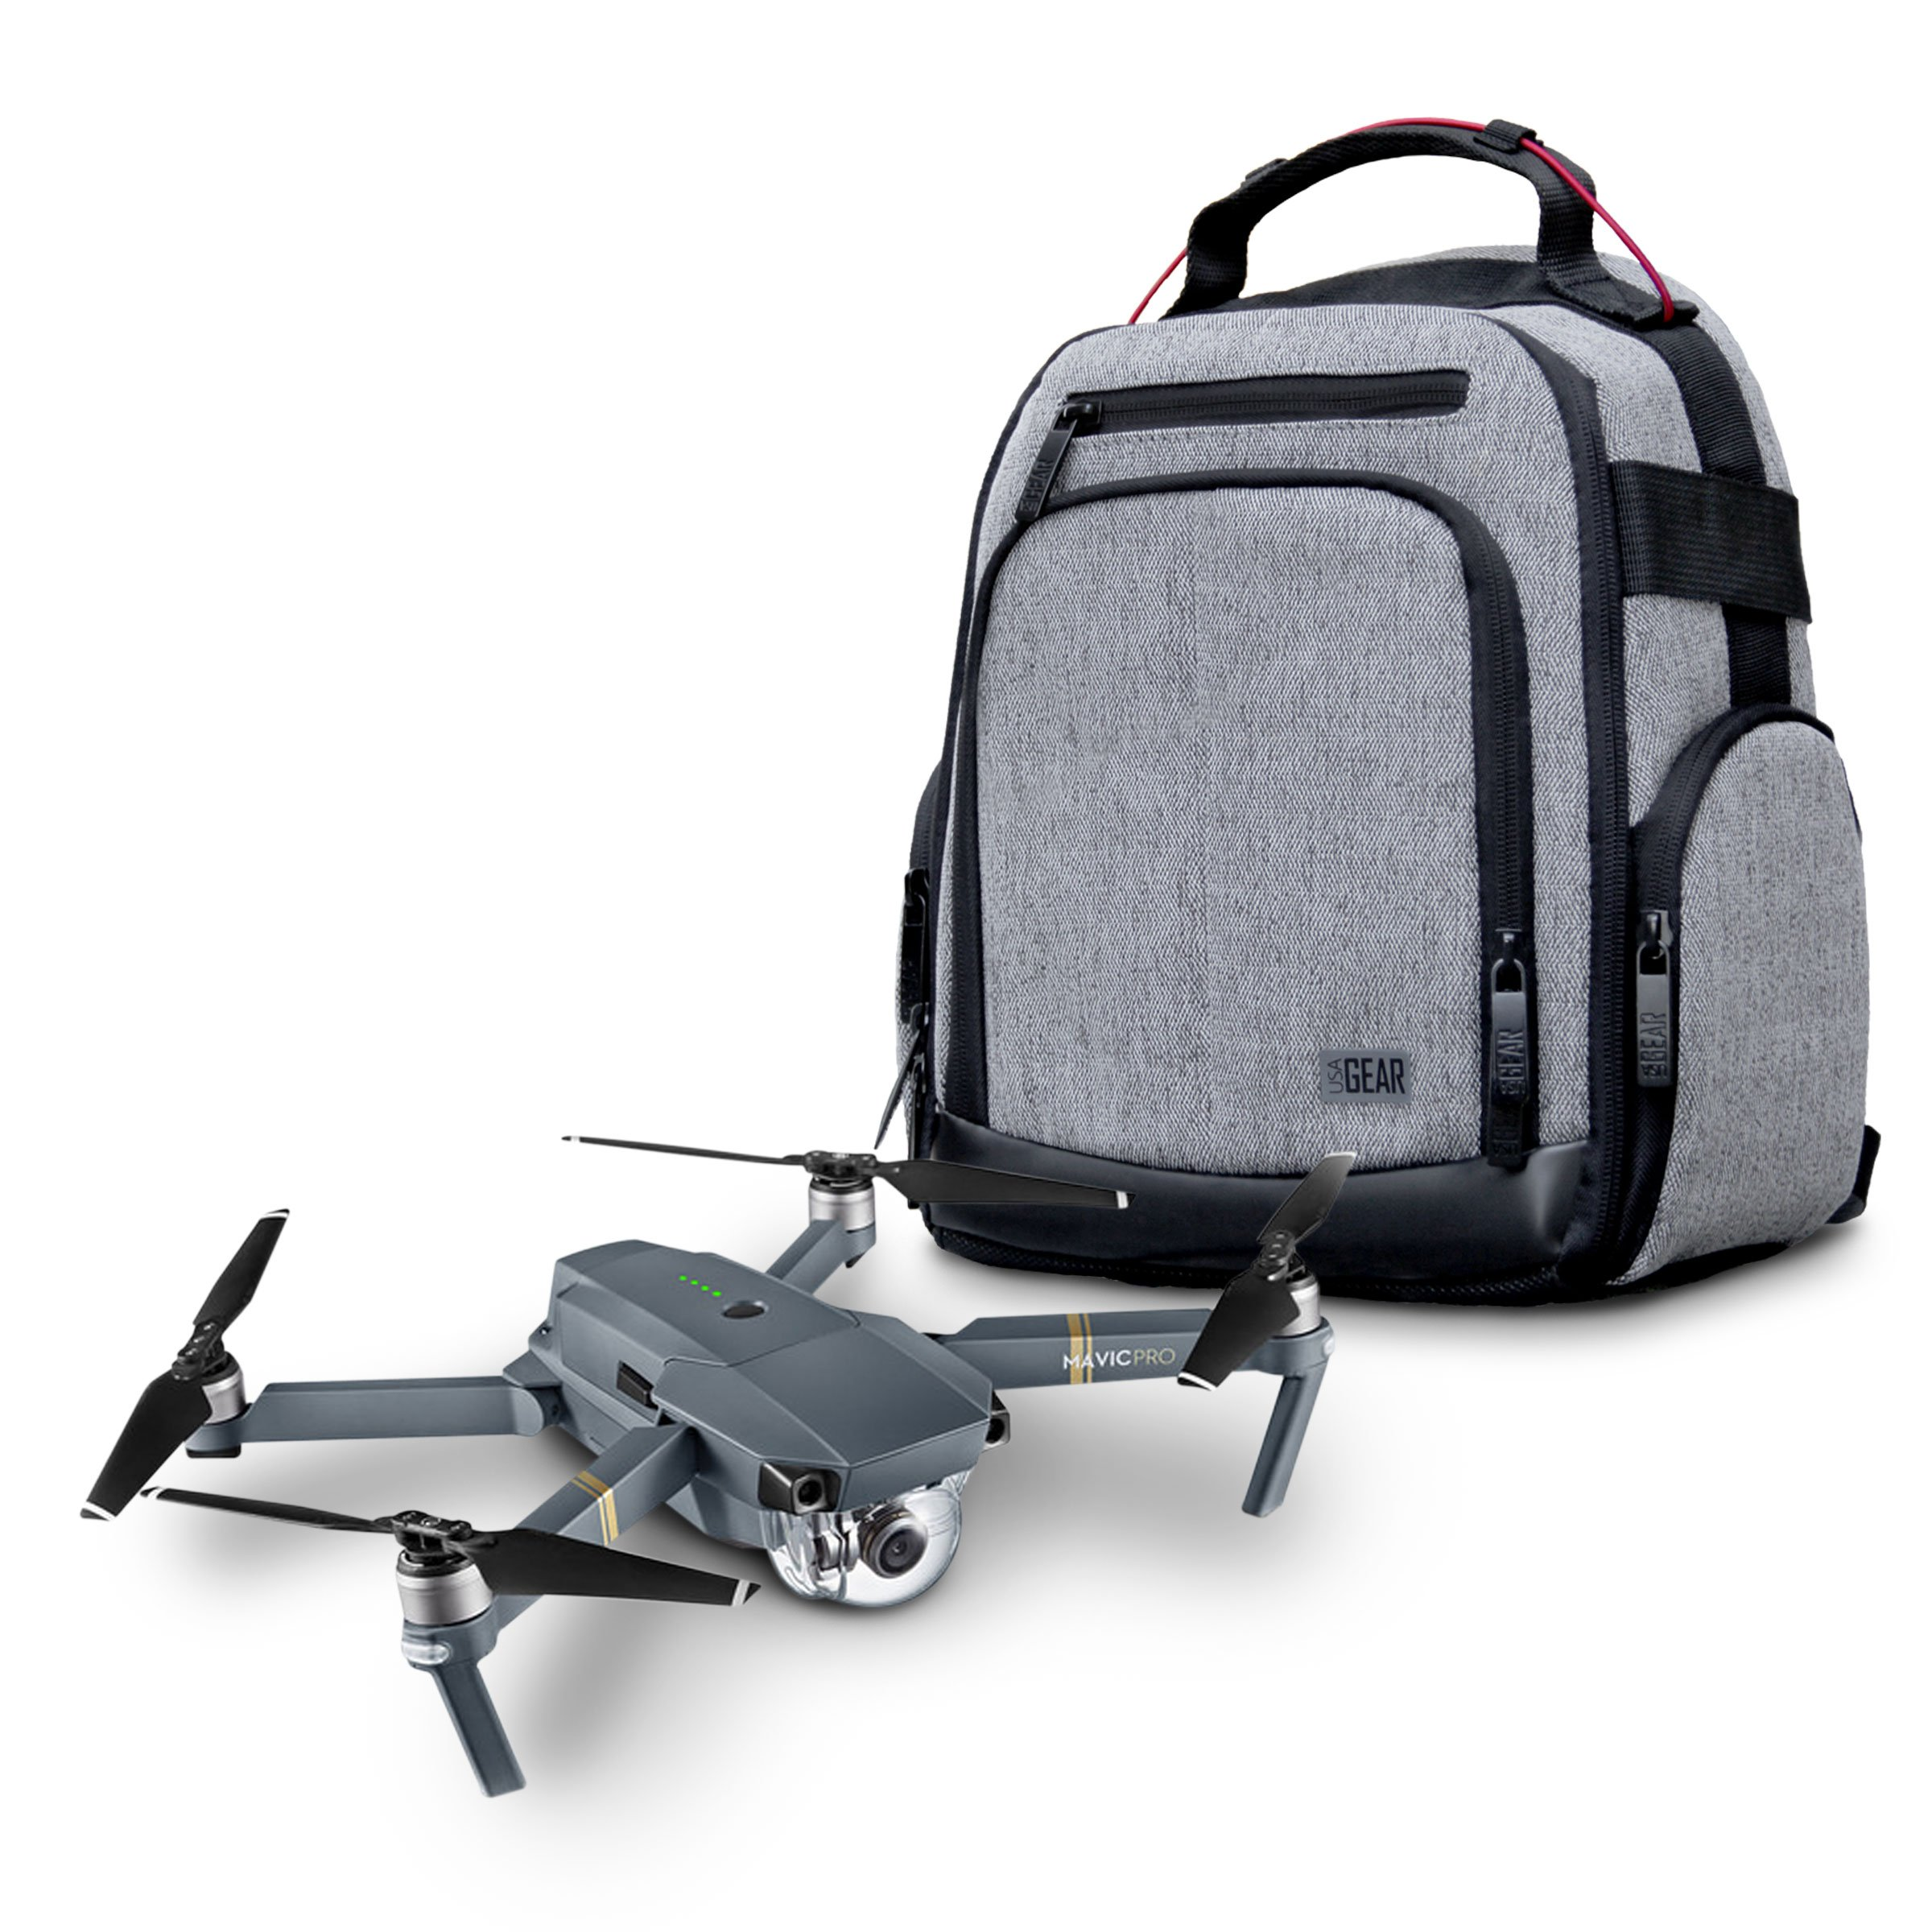 USA Gear Drone Backpack Travel Bag for DJI Mavic Pro, Spark Mini, Mavic Air, Yuneec Breeze & More - Customizable Interior Dividers, Weather Resistant, Storage for Batteries, Spare Blades & More